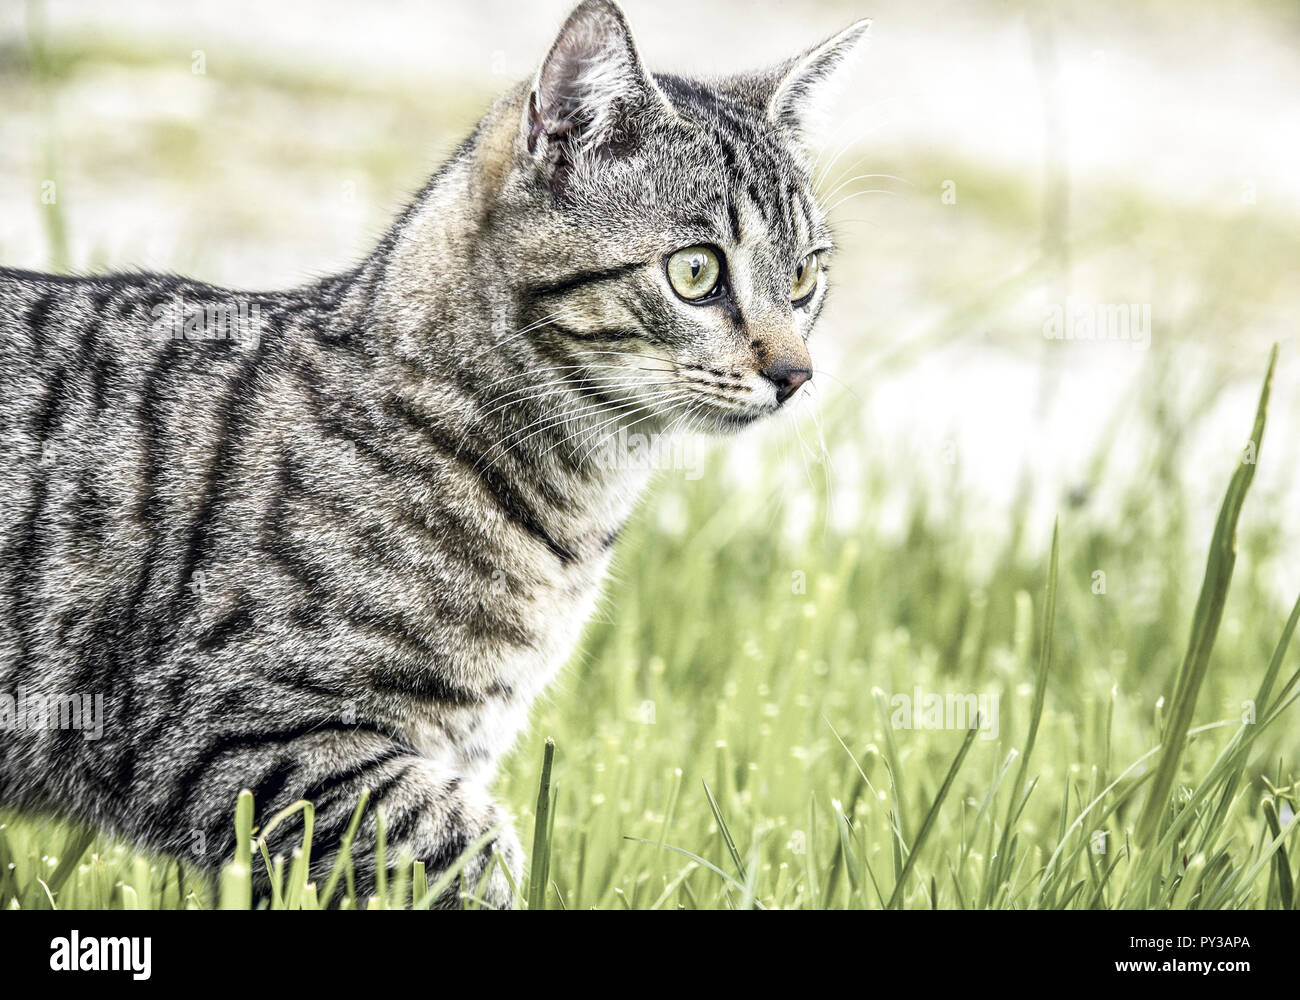 Katze laeuft in Wiese - Stock Image